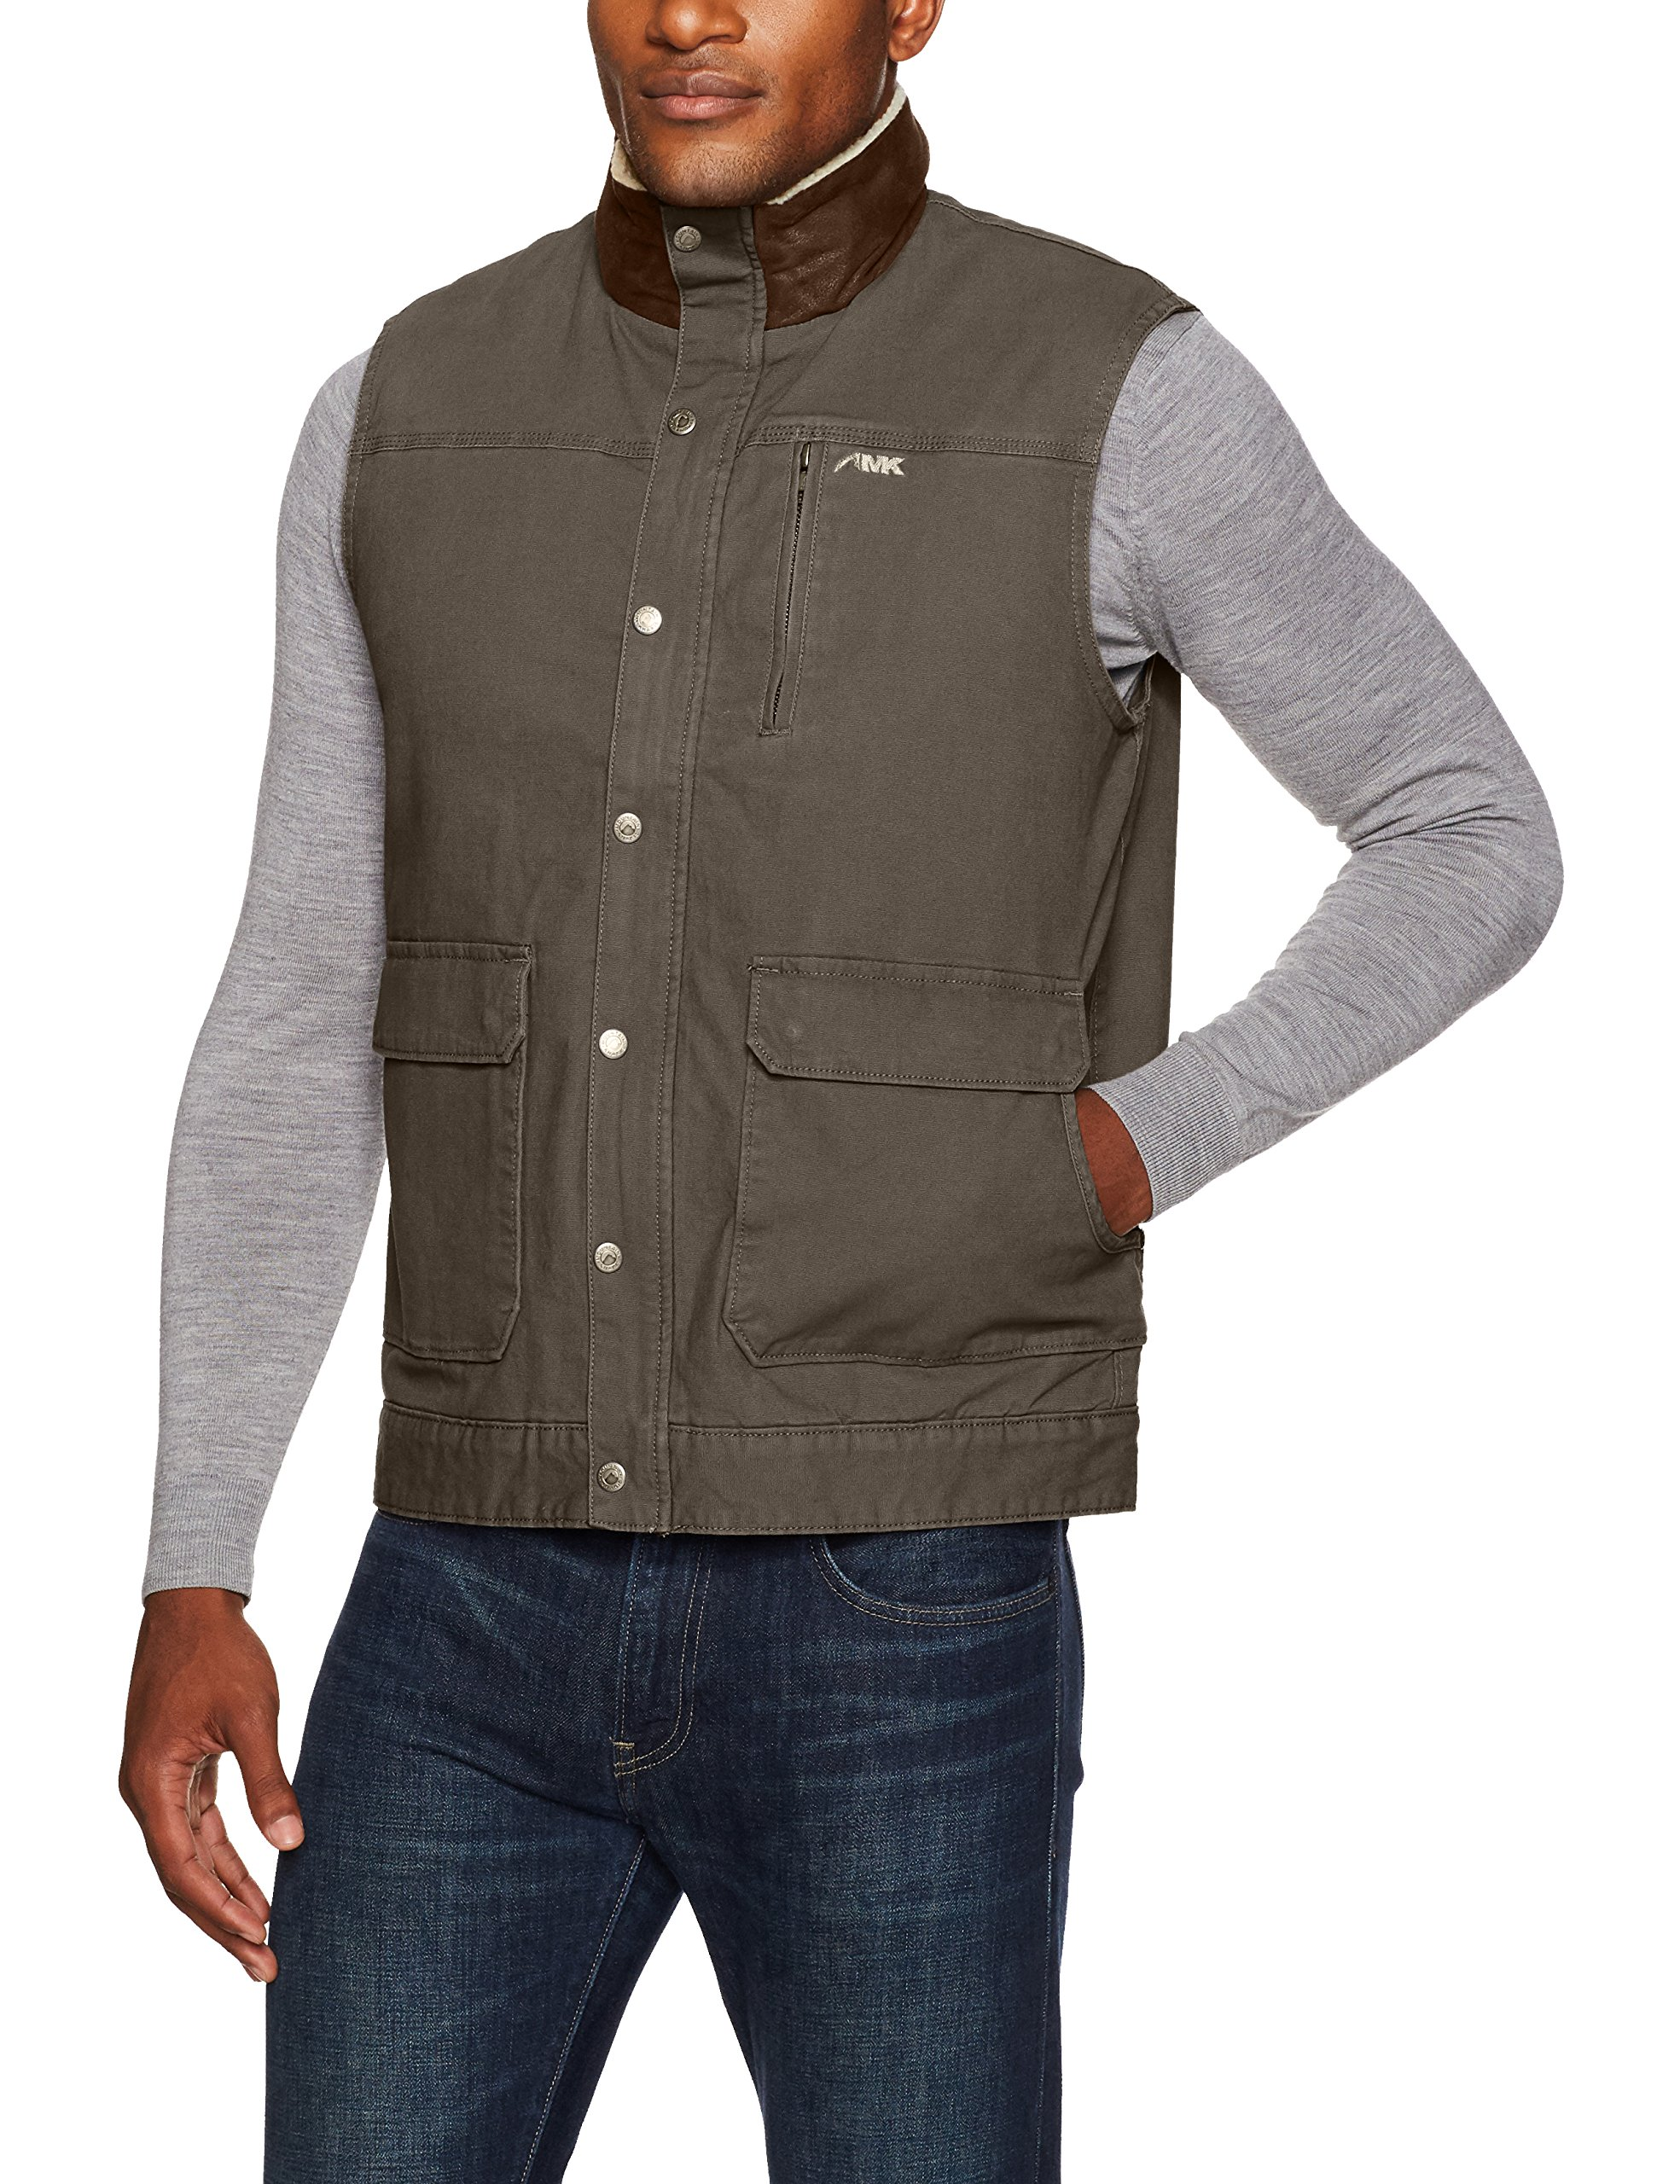 Mountain Khakis Men's Ranch Shearling Vest, Slate, XX-Large by Mountain Khakis